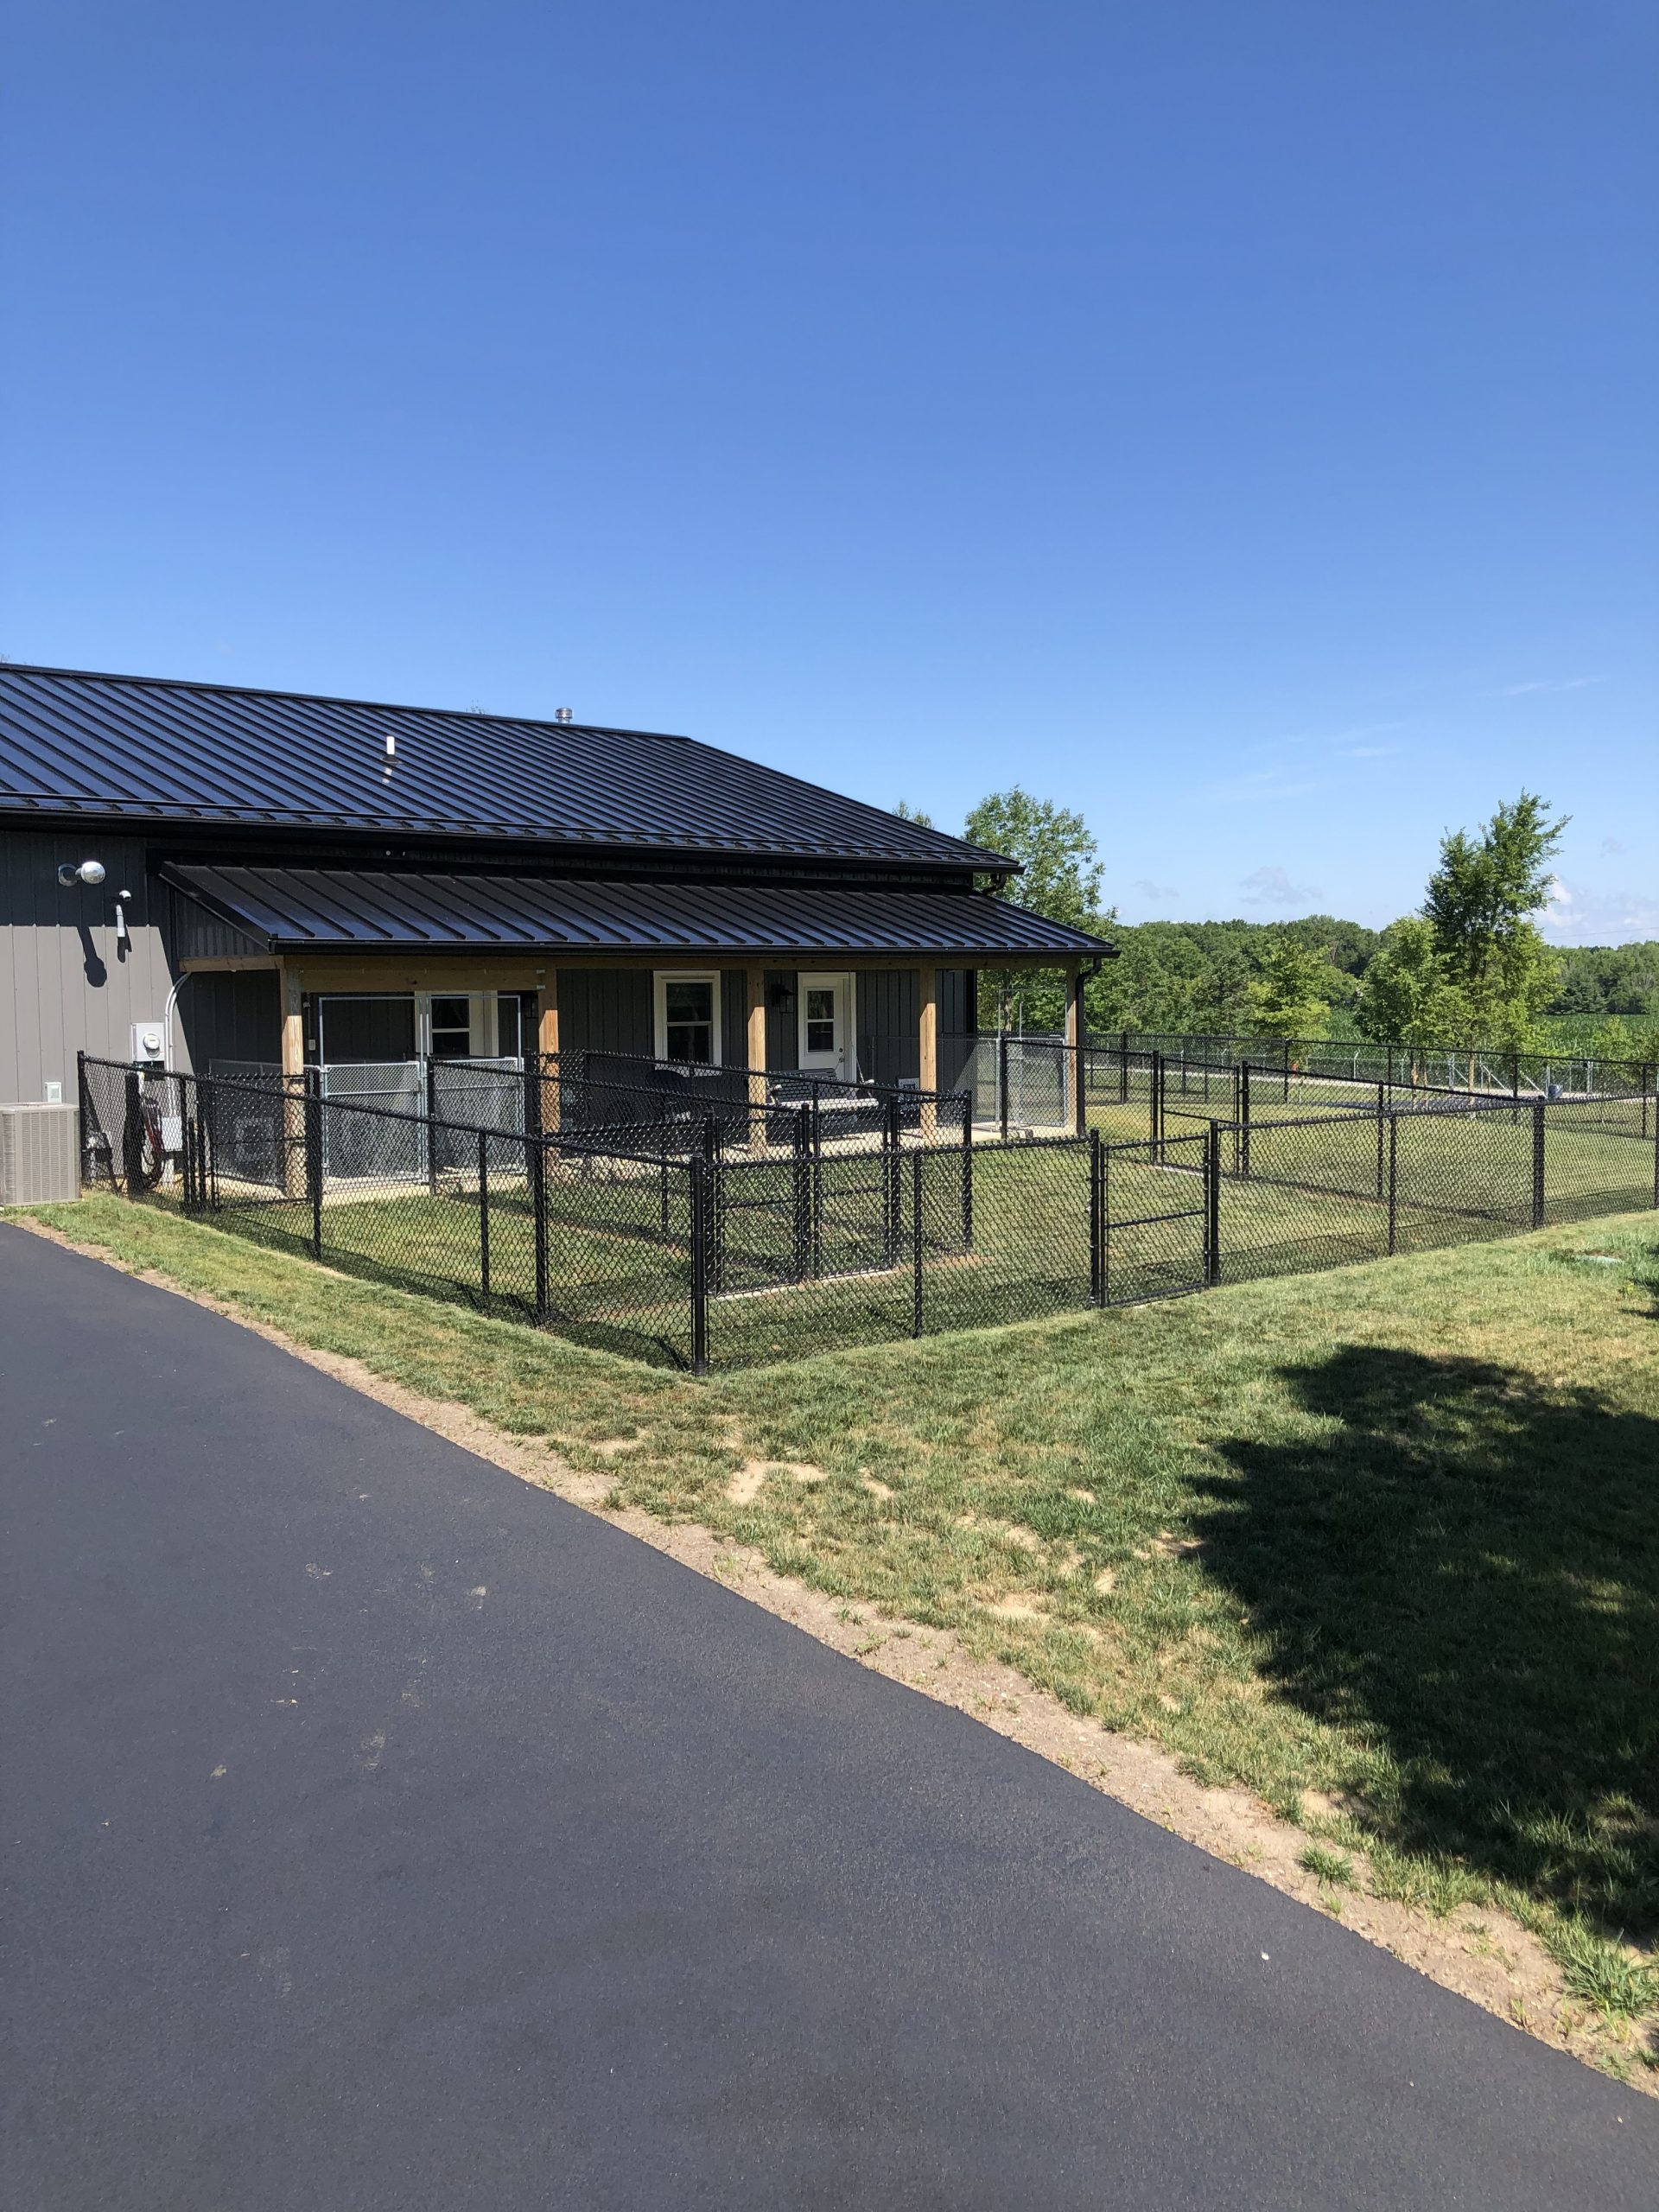 Main kennel area July 2020